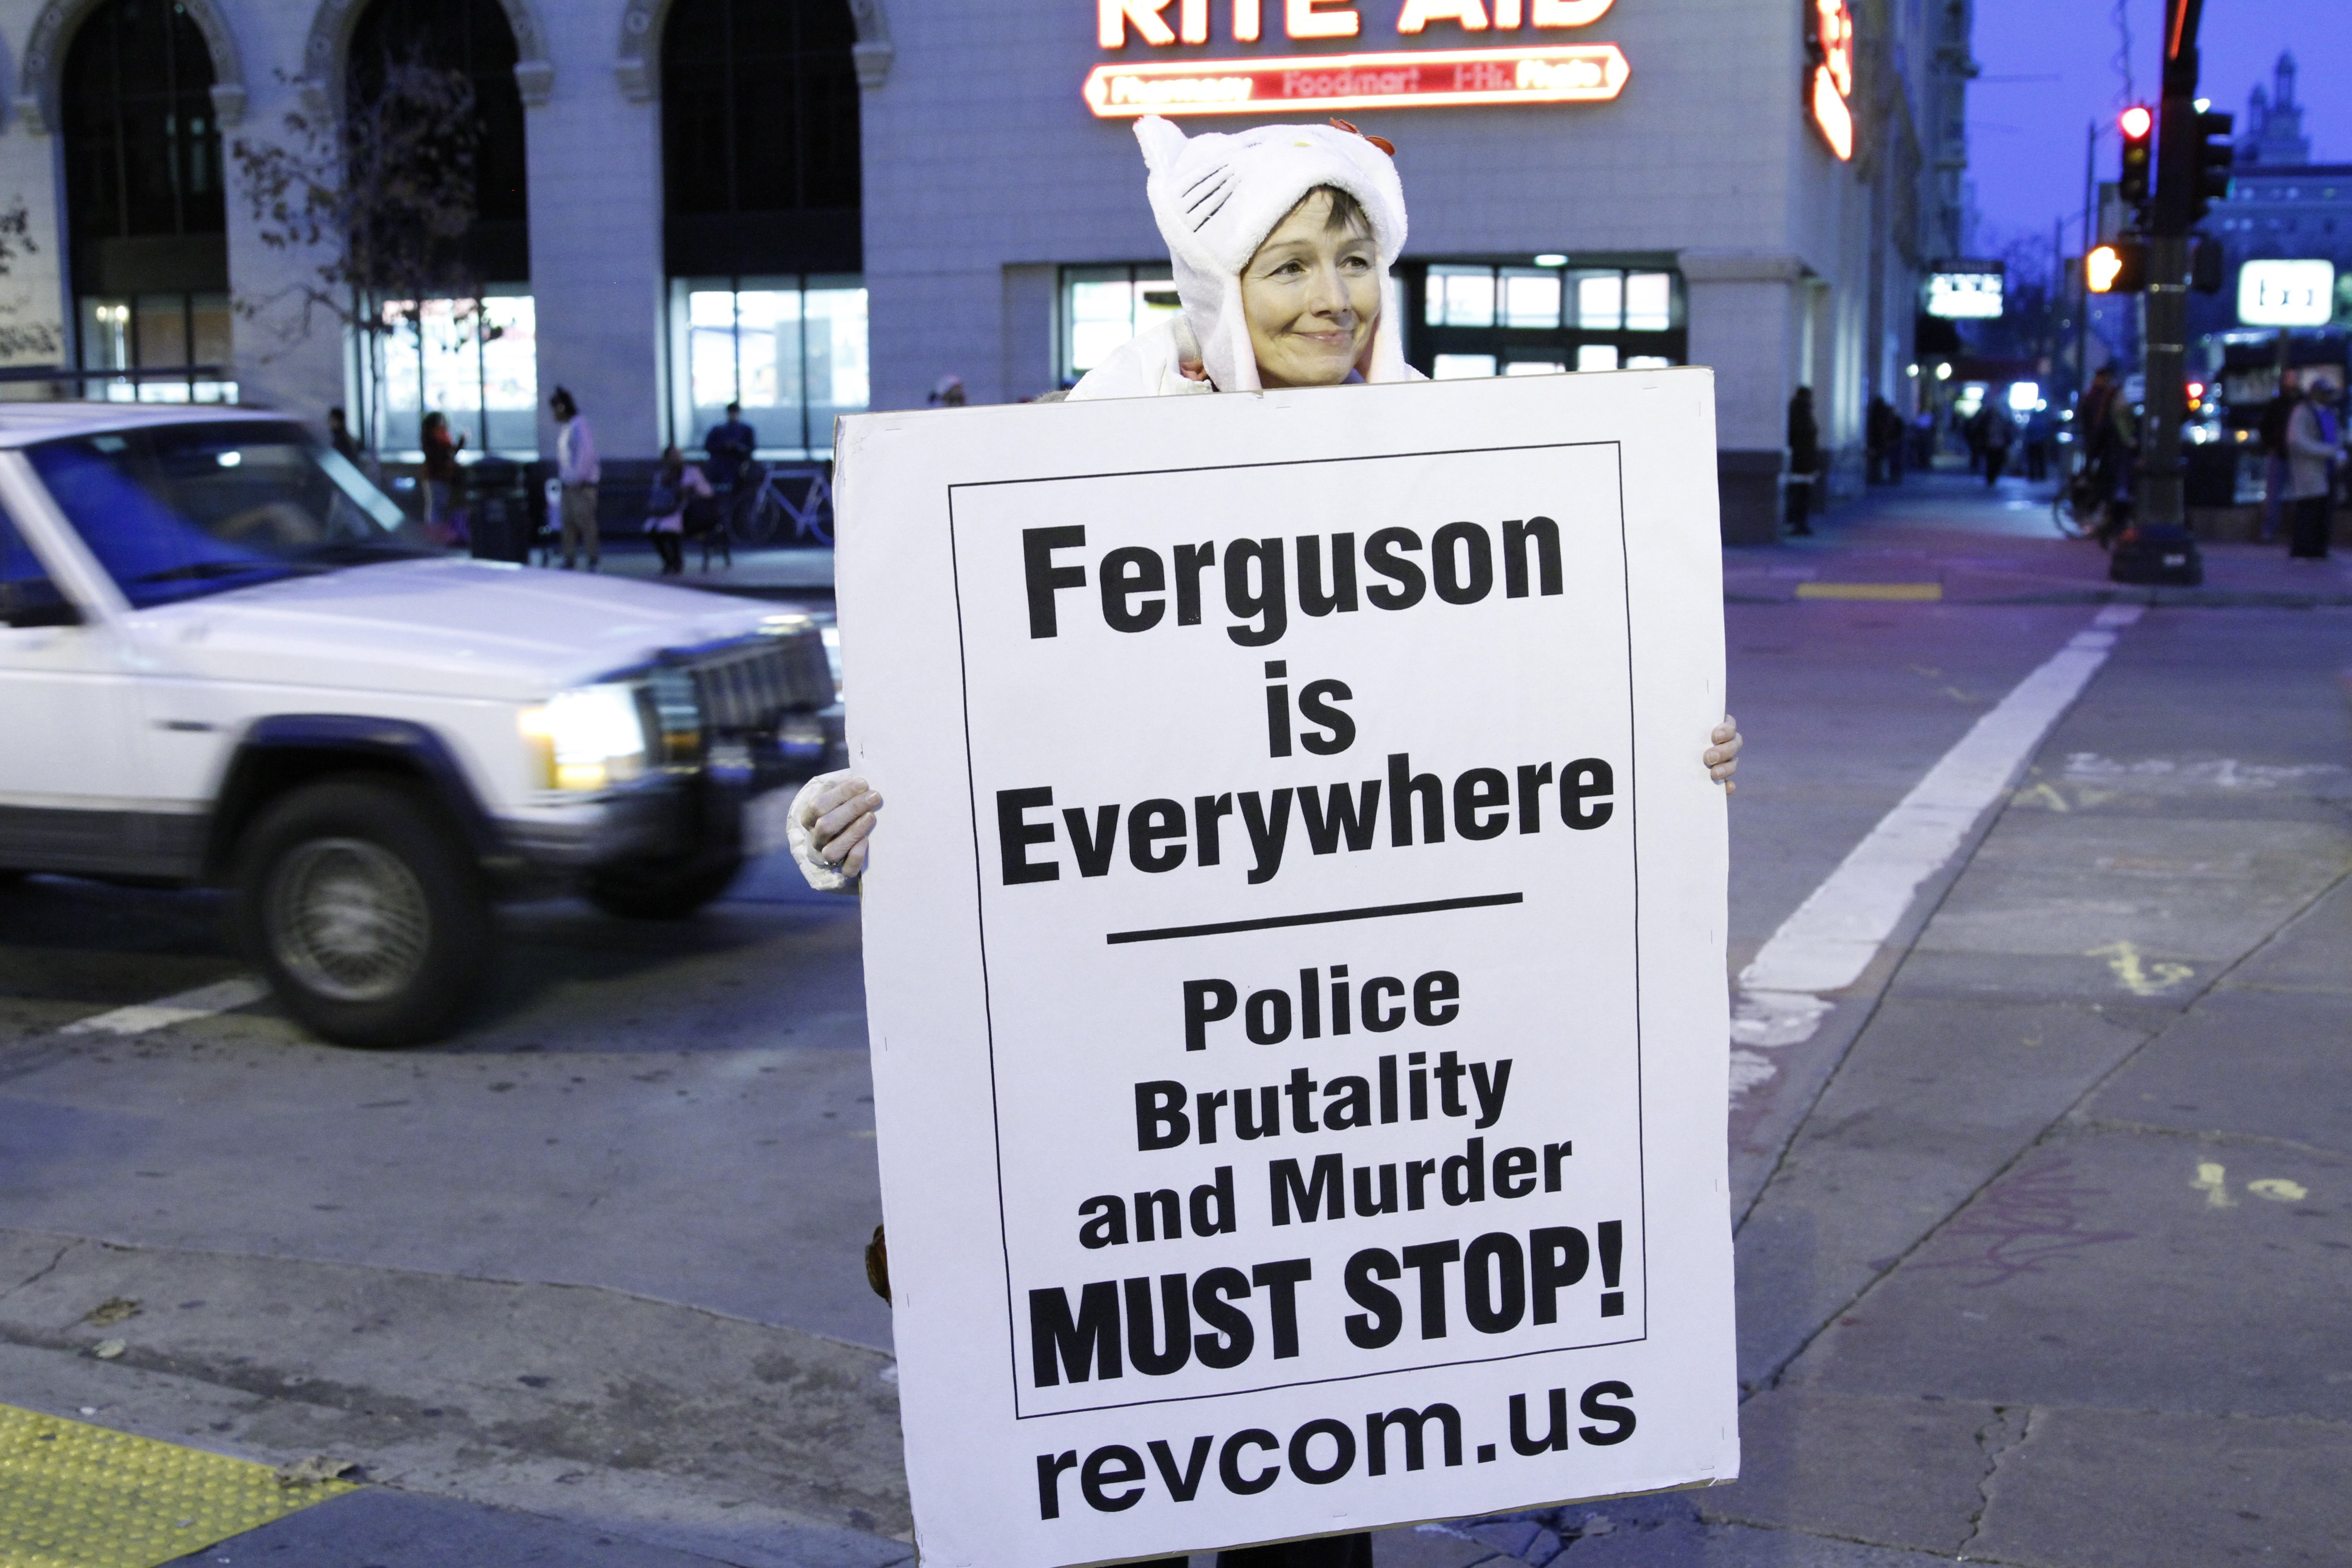 Protestors gather to protest after two grand juries decided not to indict the police officers involved in the deaths of Michael Brown in Ferguson, MO. and Eric Garner in New York, NY, on December 04, 2014 in Oakland, CA.